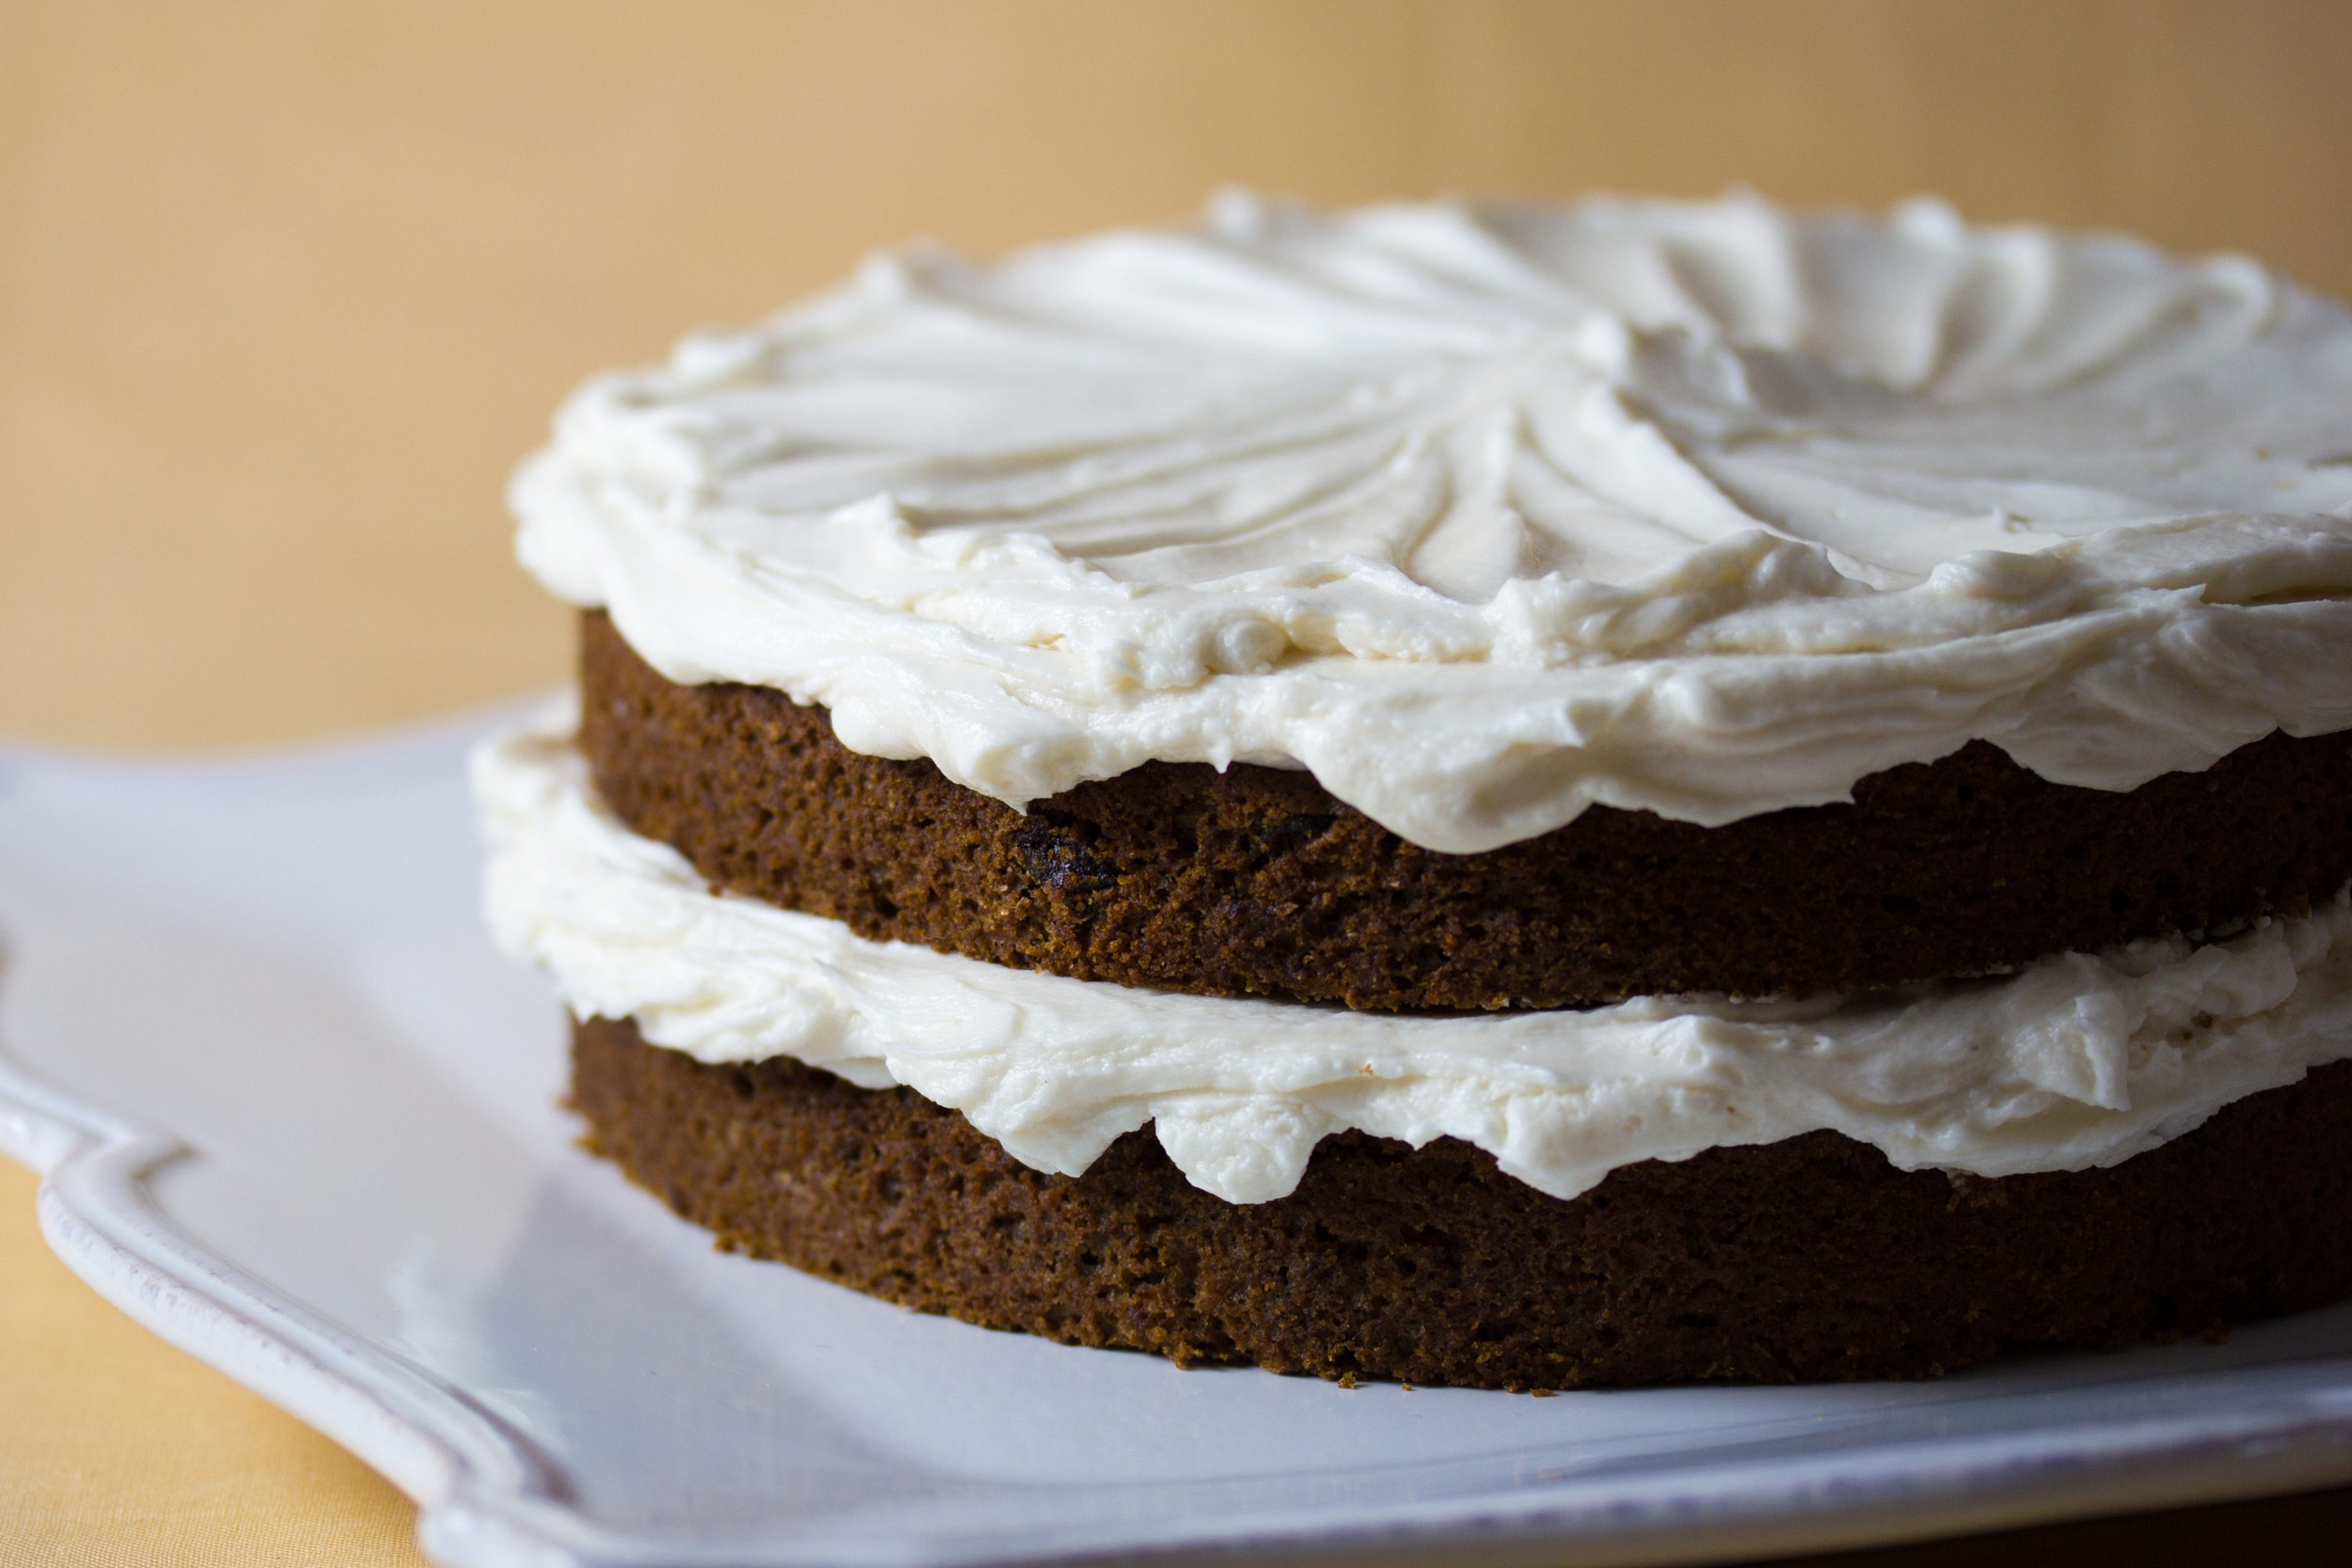 Recipe – Spiced Cream Cheese Frosting